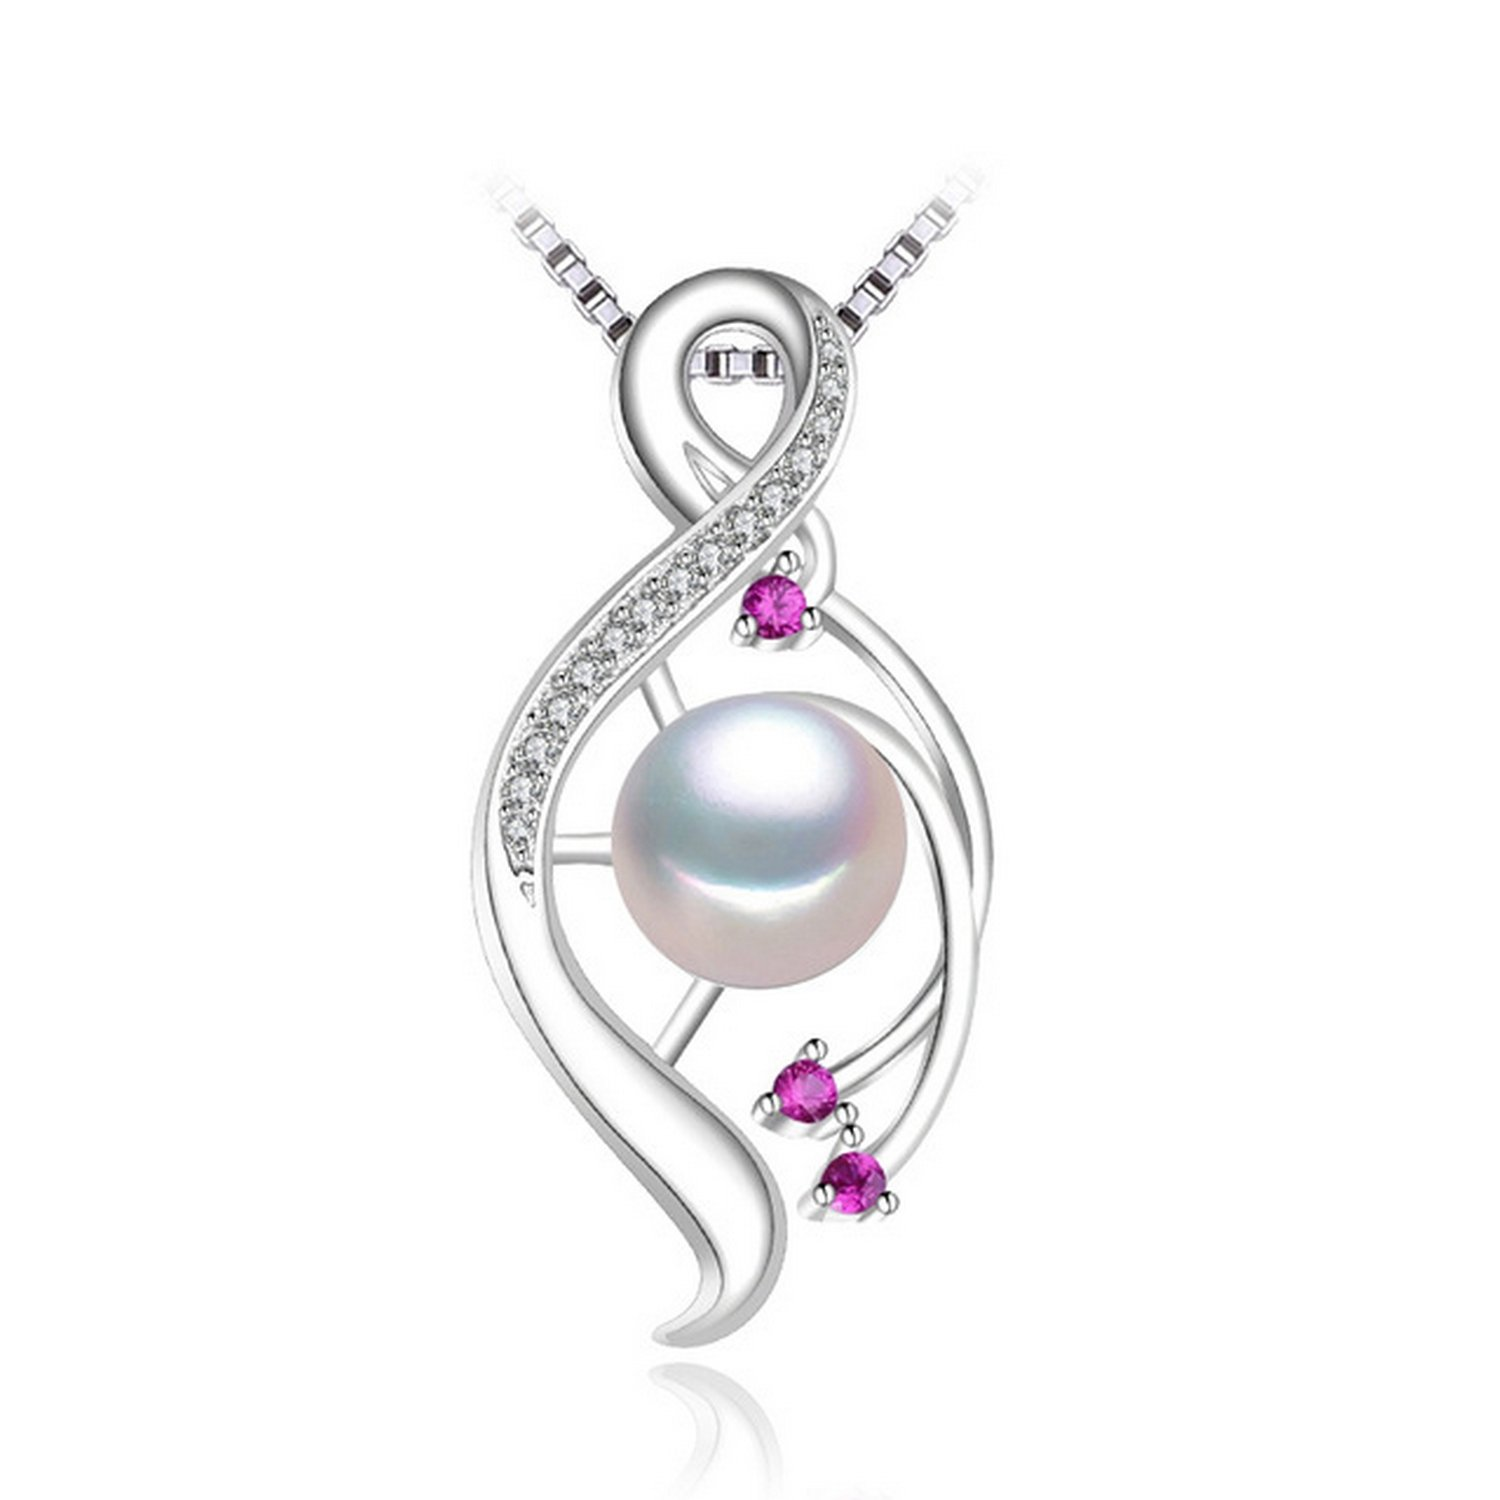 CS-DB Jewelry Silver Pearl Fashion Ruby Gift Chain Charm Pendants Necklaces